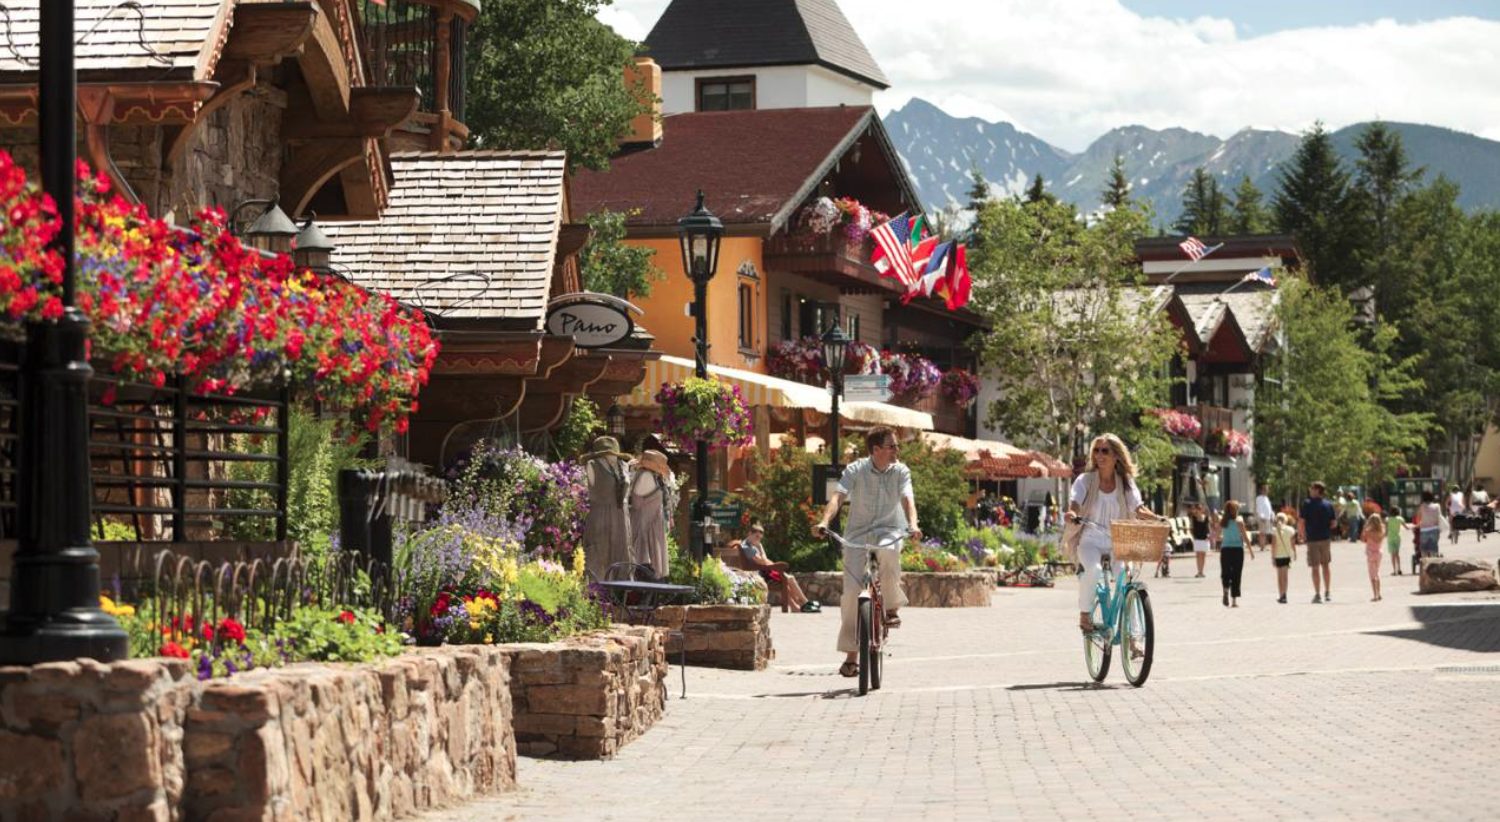 Travel Advisor Top Picks for Summer in Vail Colorado